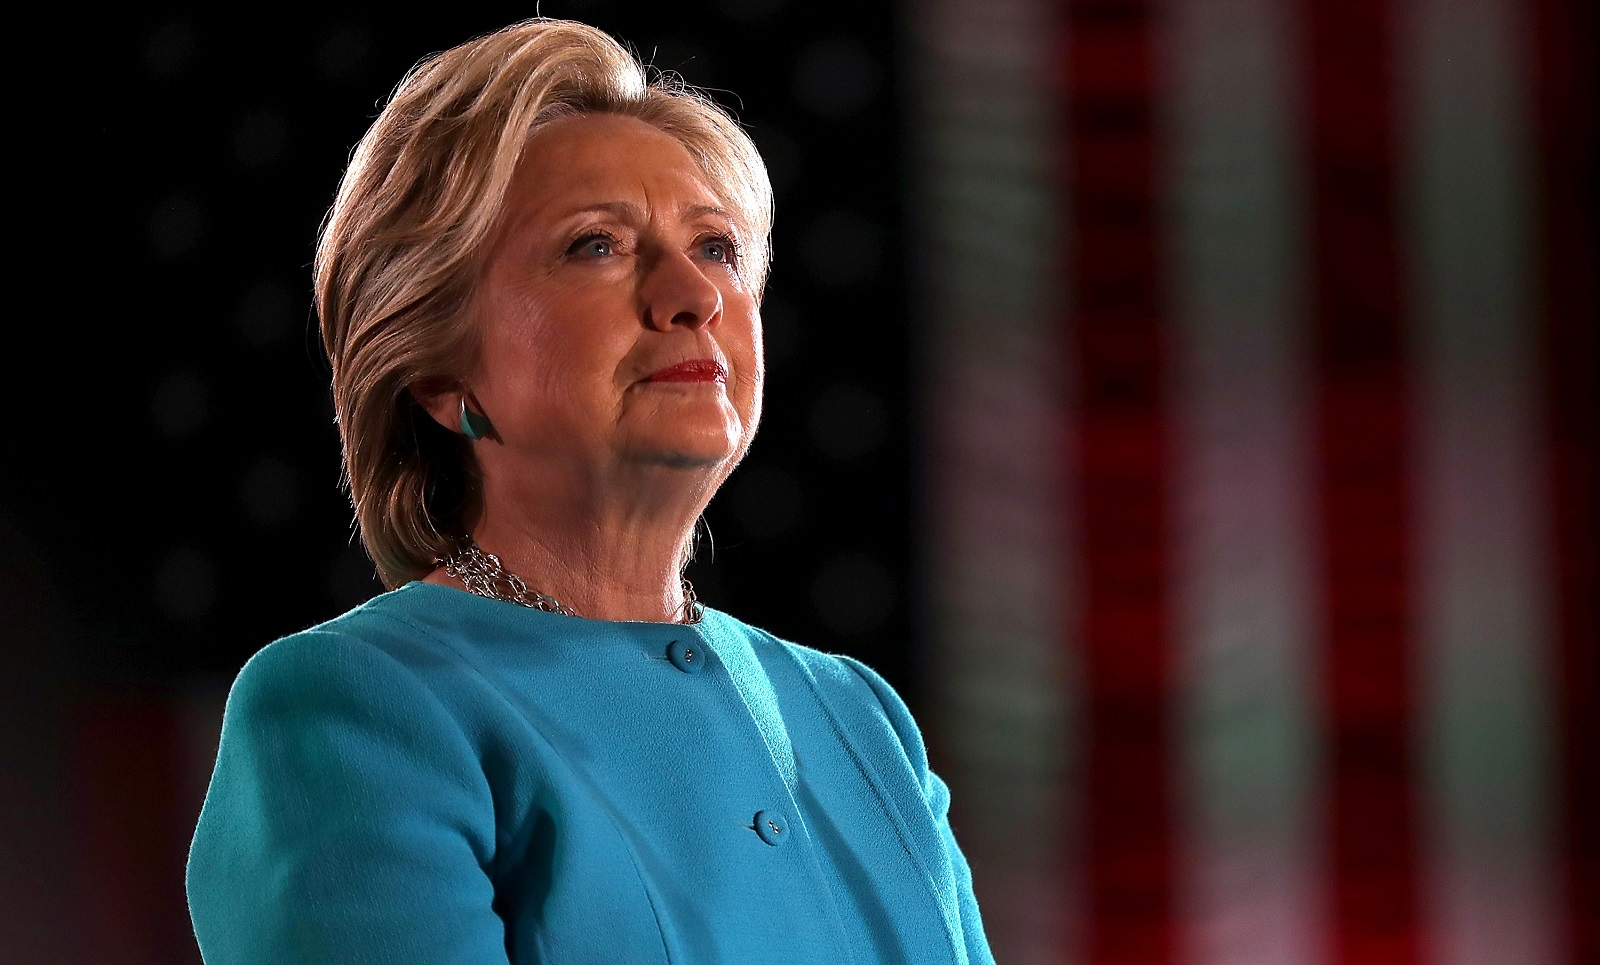 Hillary Clinton will be among the speakers at Rep. Louise Slaughter's funeral on Friday. (News file photo)